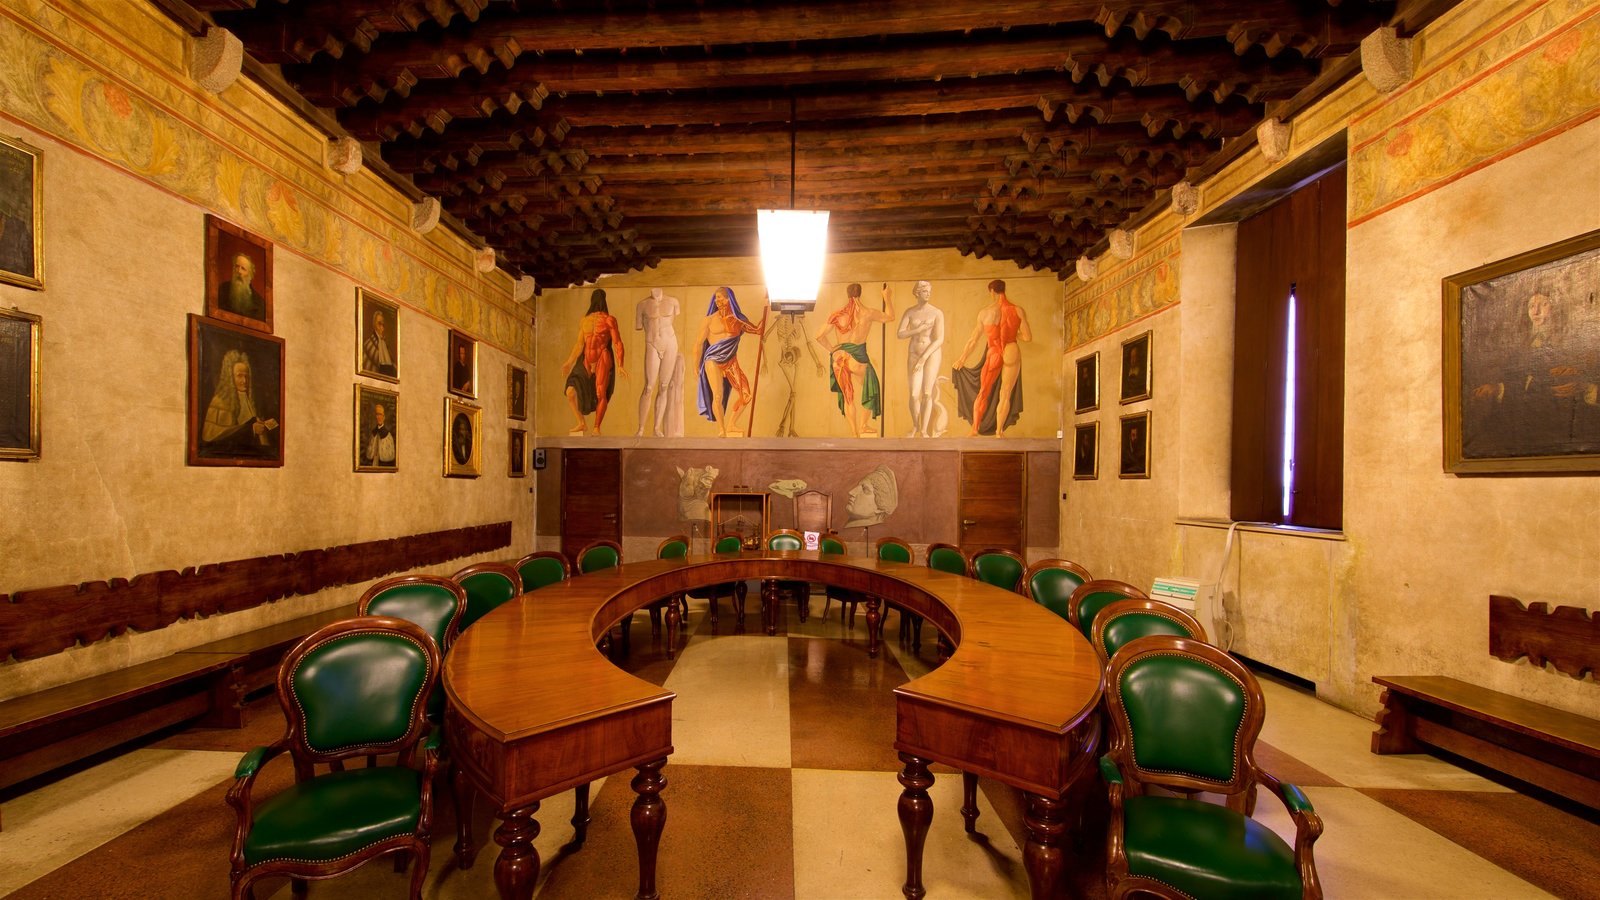 Palazzo del Bò which includes art, interior views and heritage elements